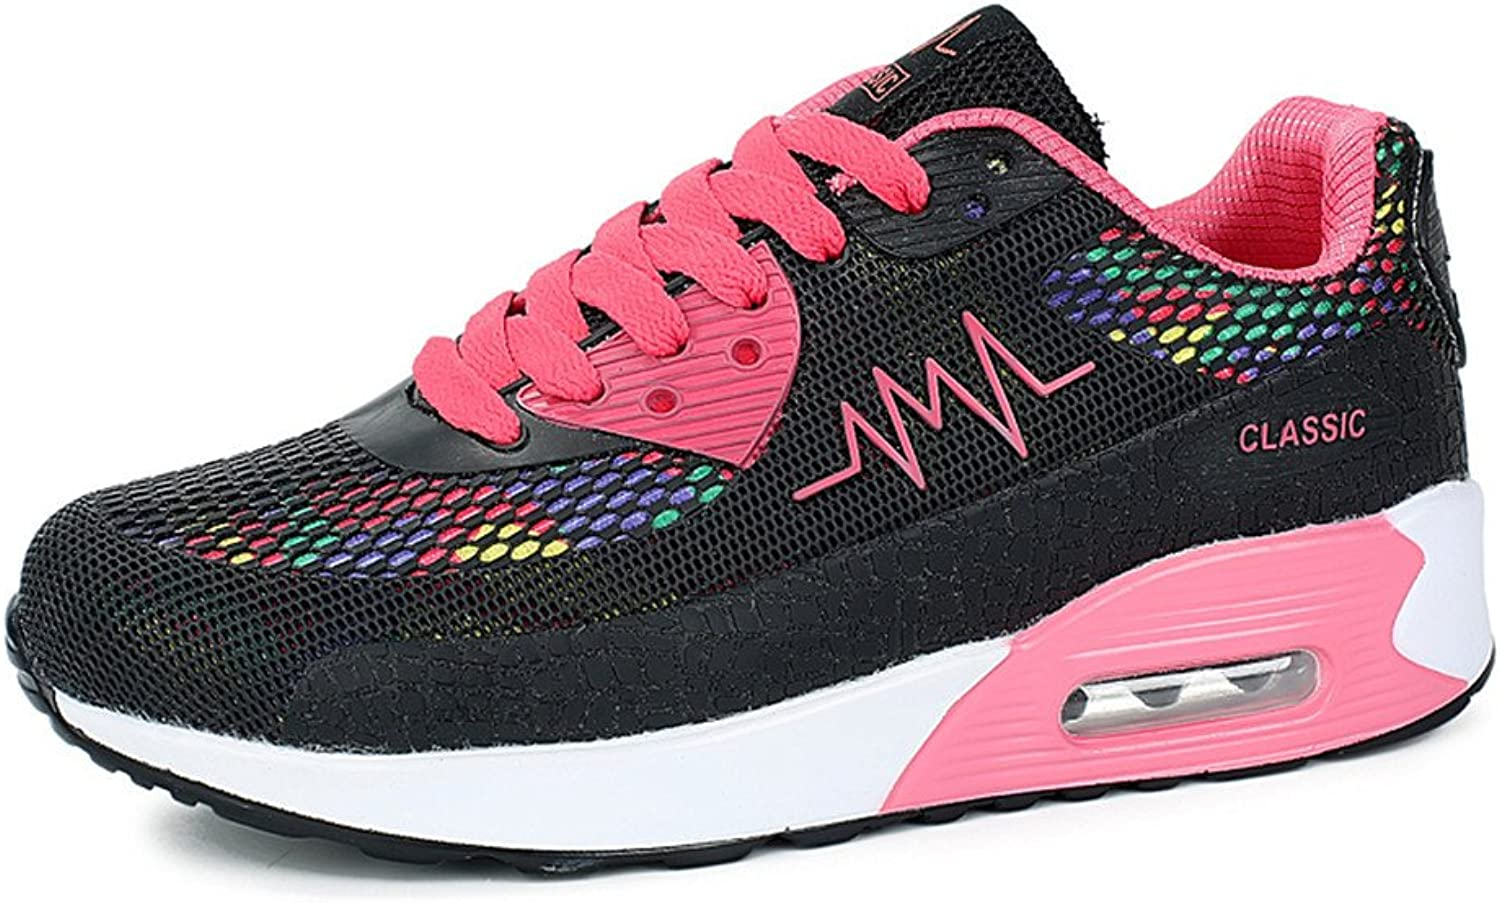 XDX Taste Of Life Classic Breathable Air Cushion Running shoes Women's Light Mesh Sneakers